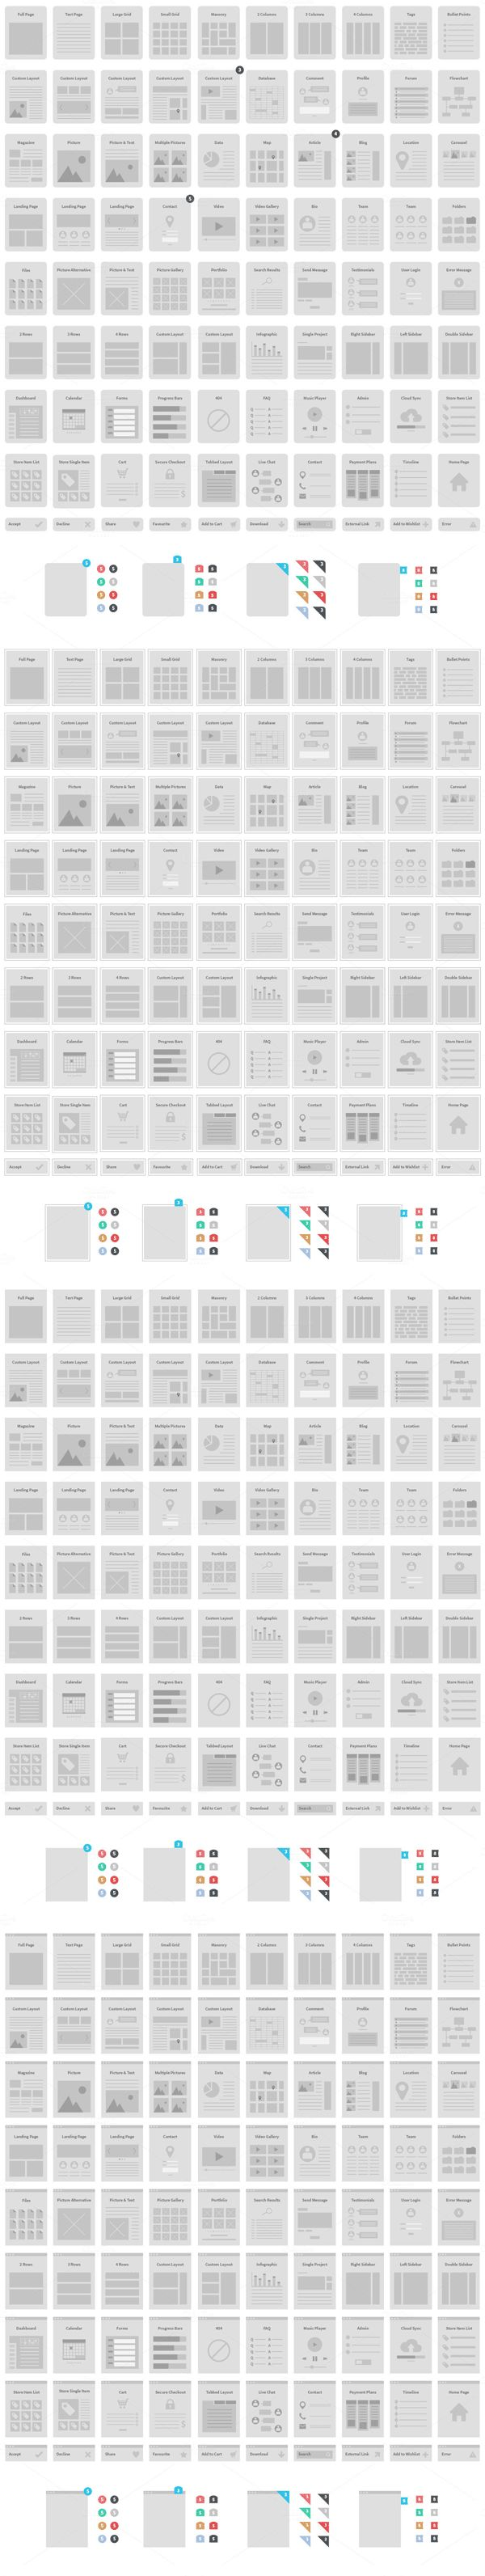 The set includes 90 wireframe screens.